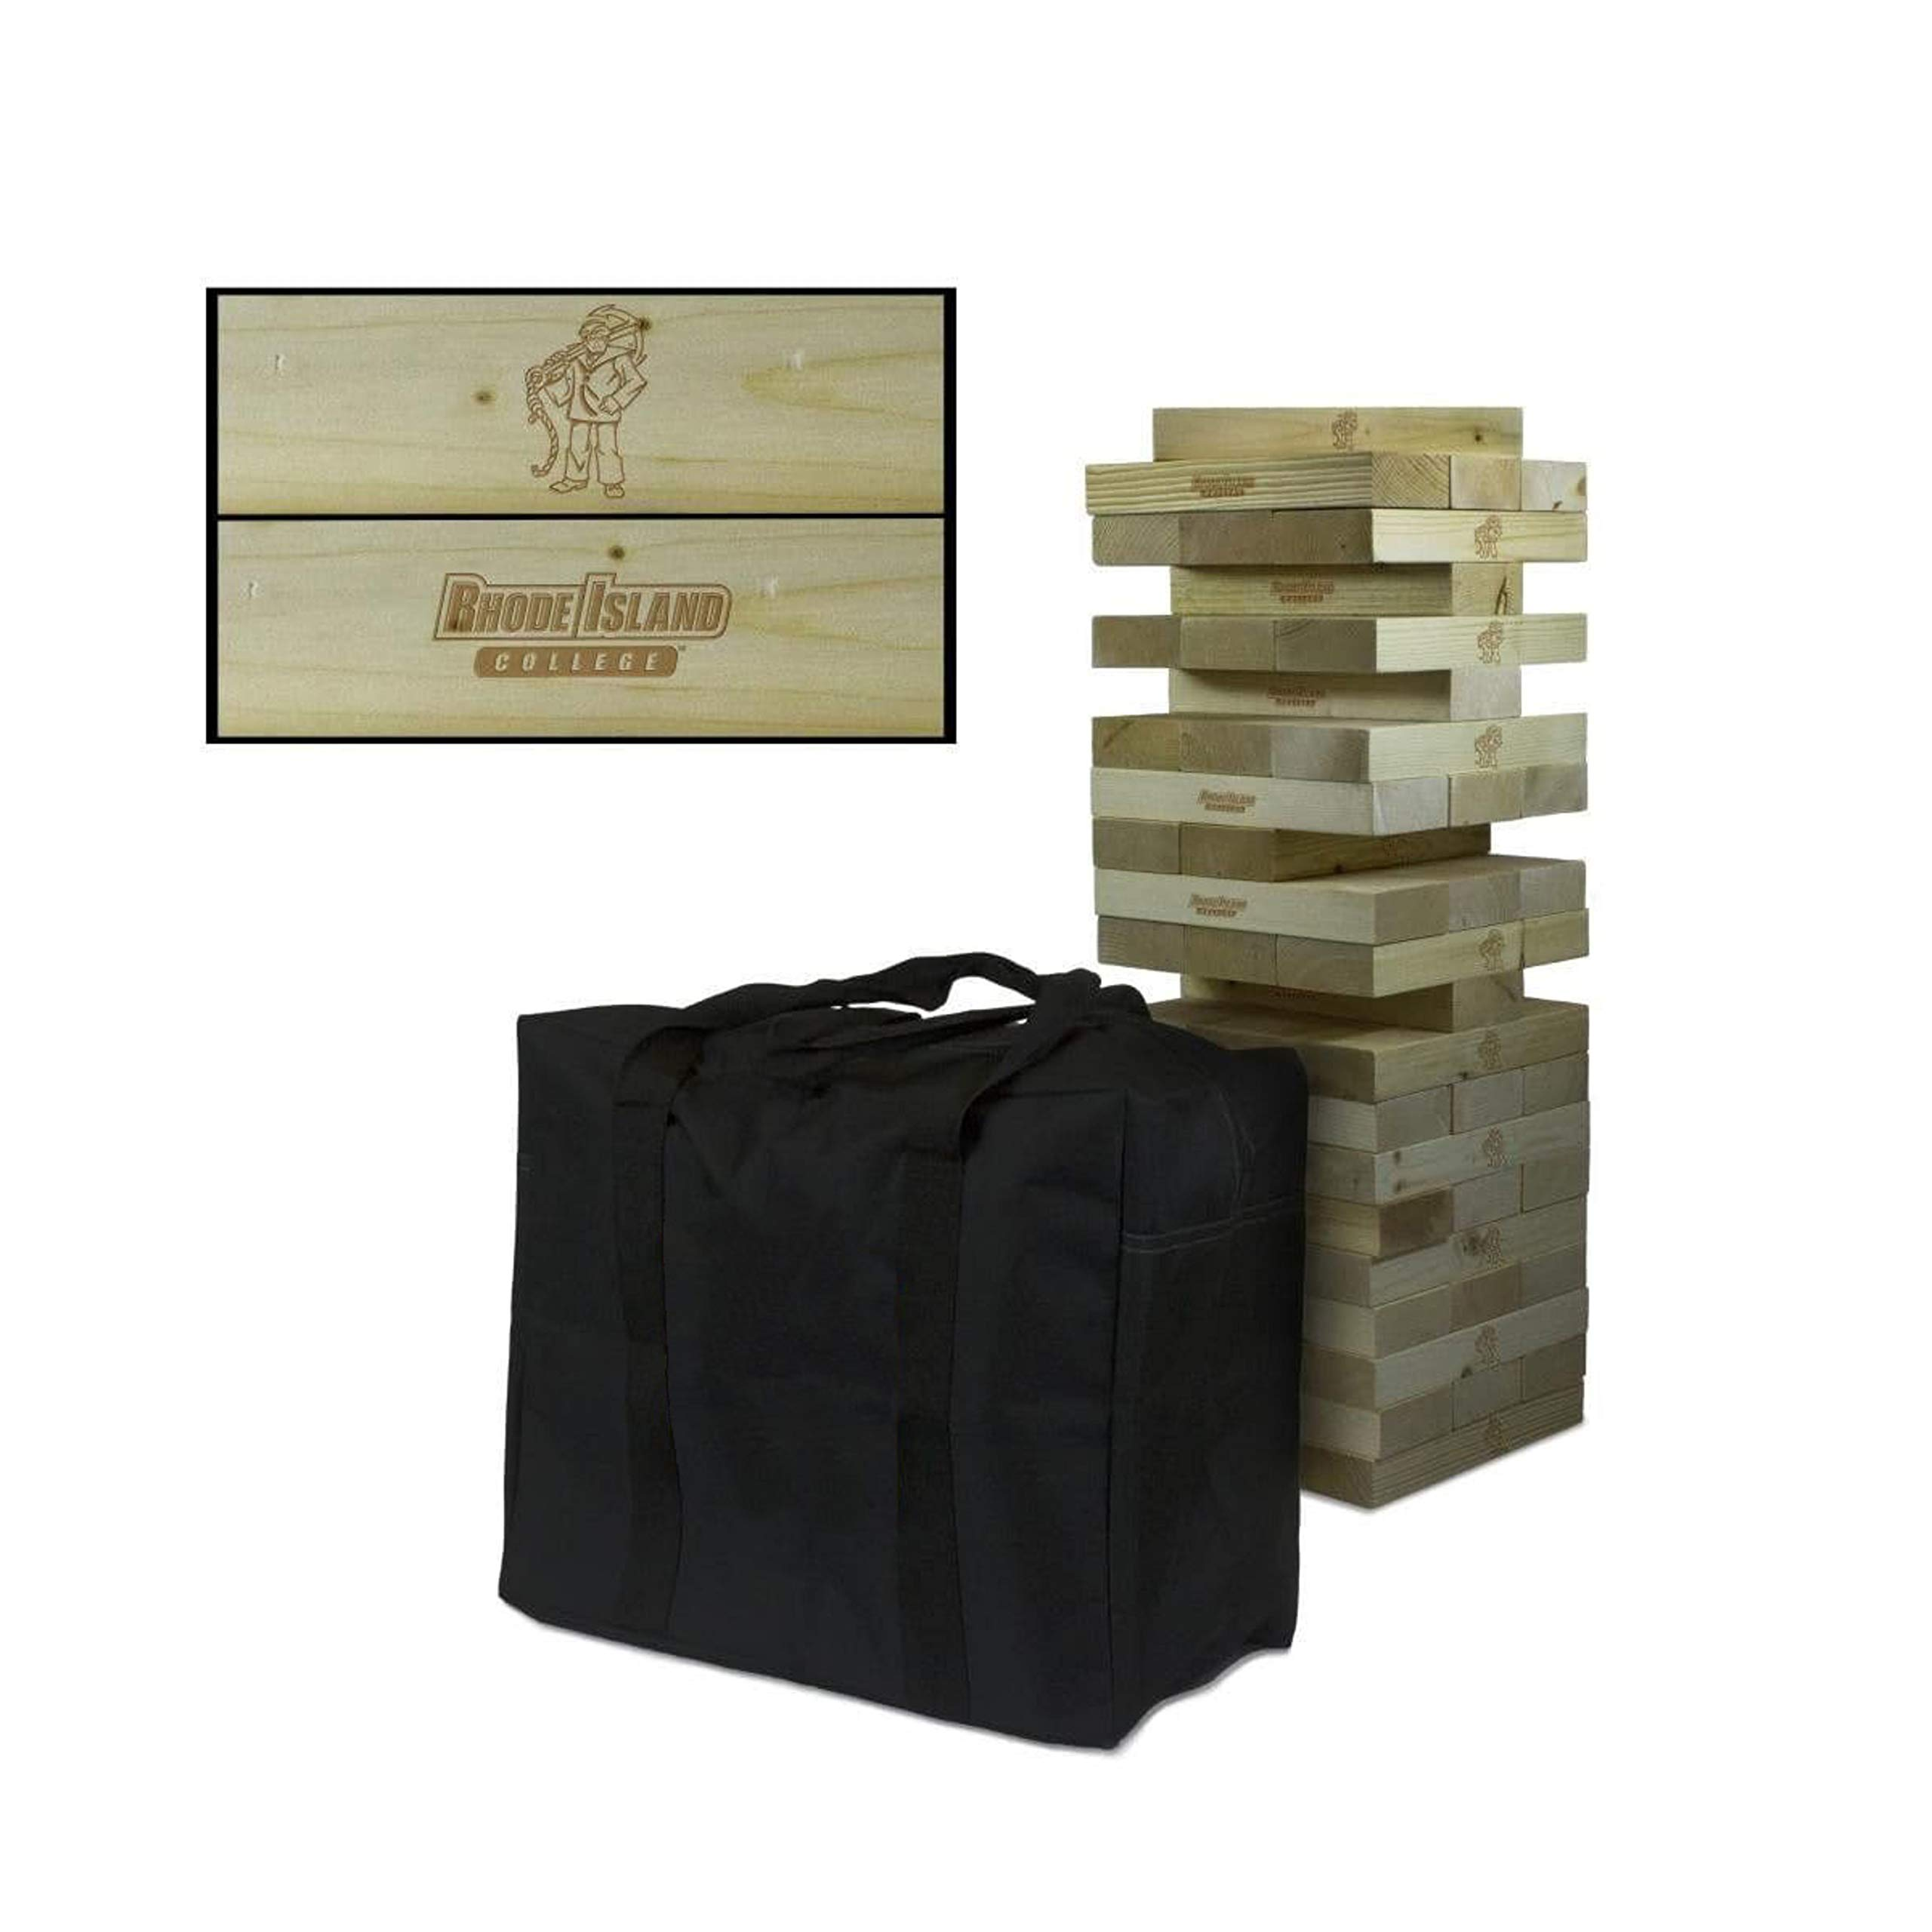 Victory Tailgate NCAA Giant Wooden Tumble Tower Game Set - Rhode Island College Anchormen by Victory Tailgate